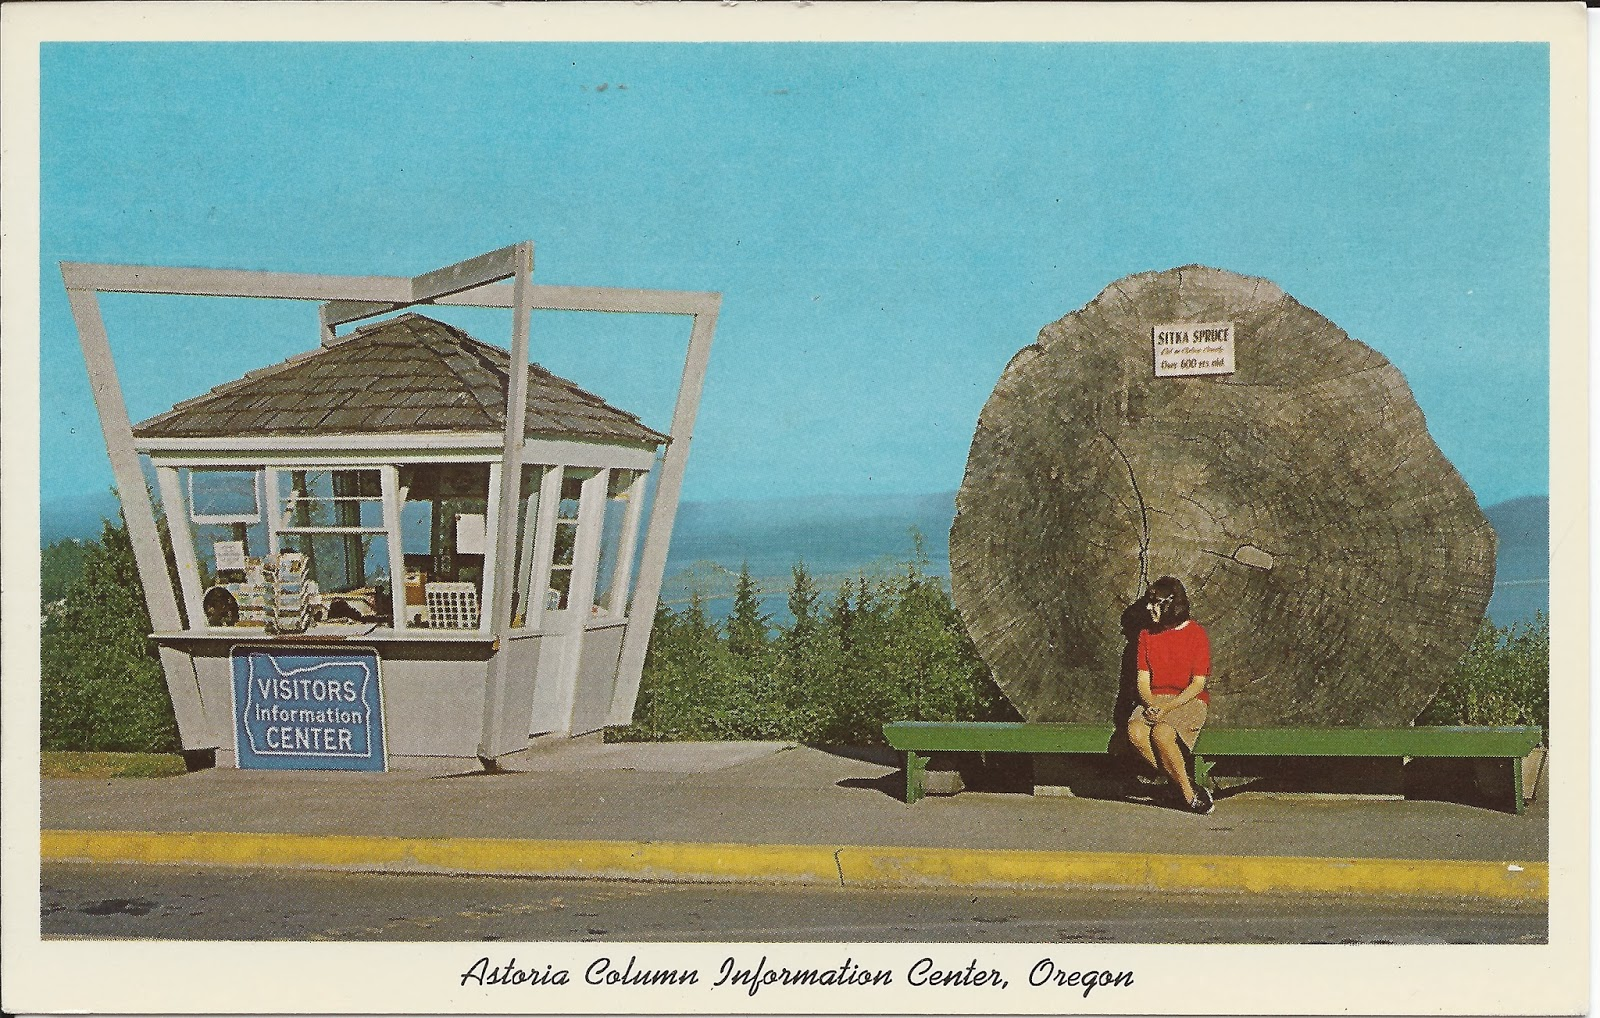 Astoria Column Information Center, Oregon Postcard